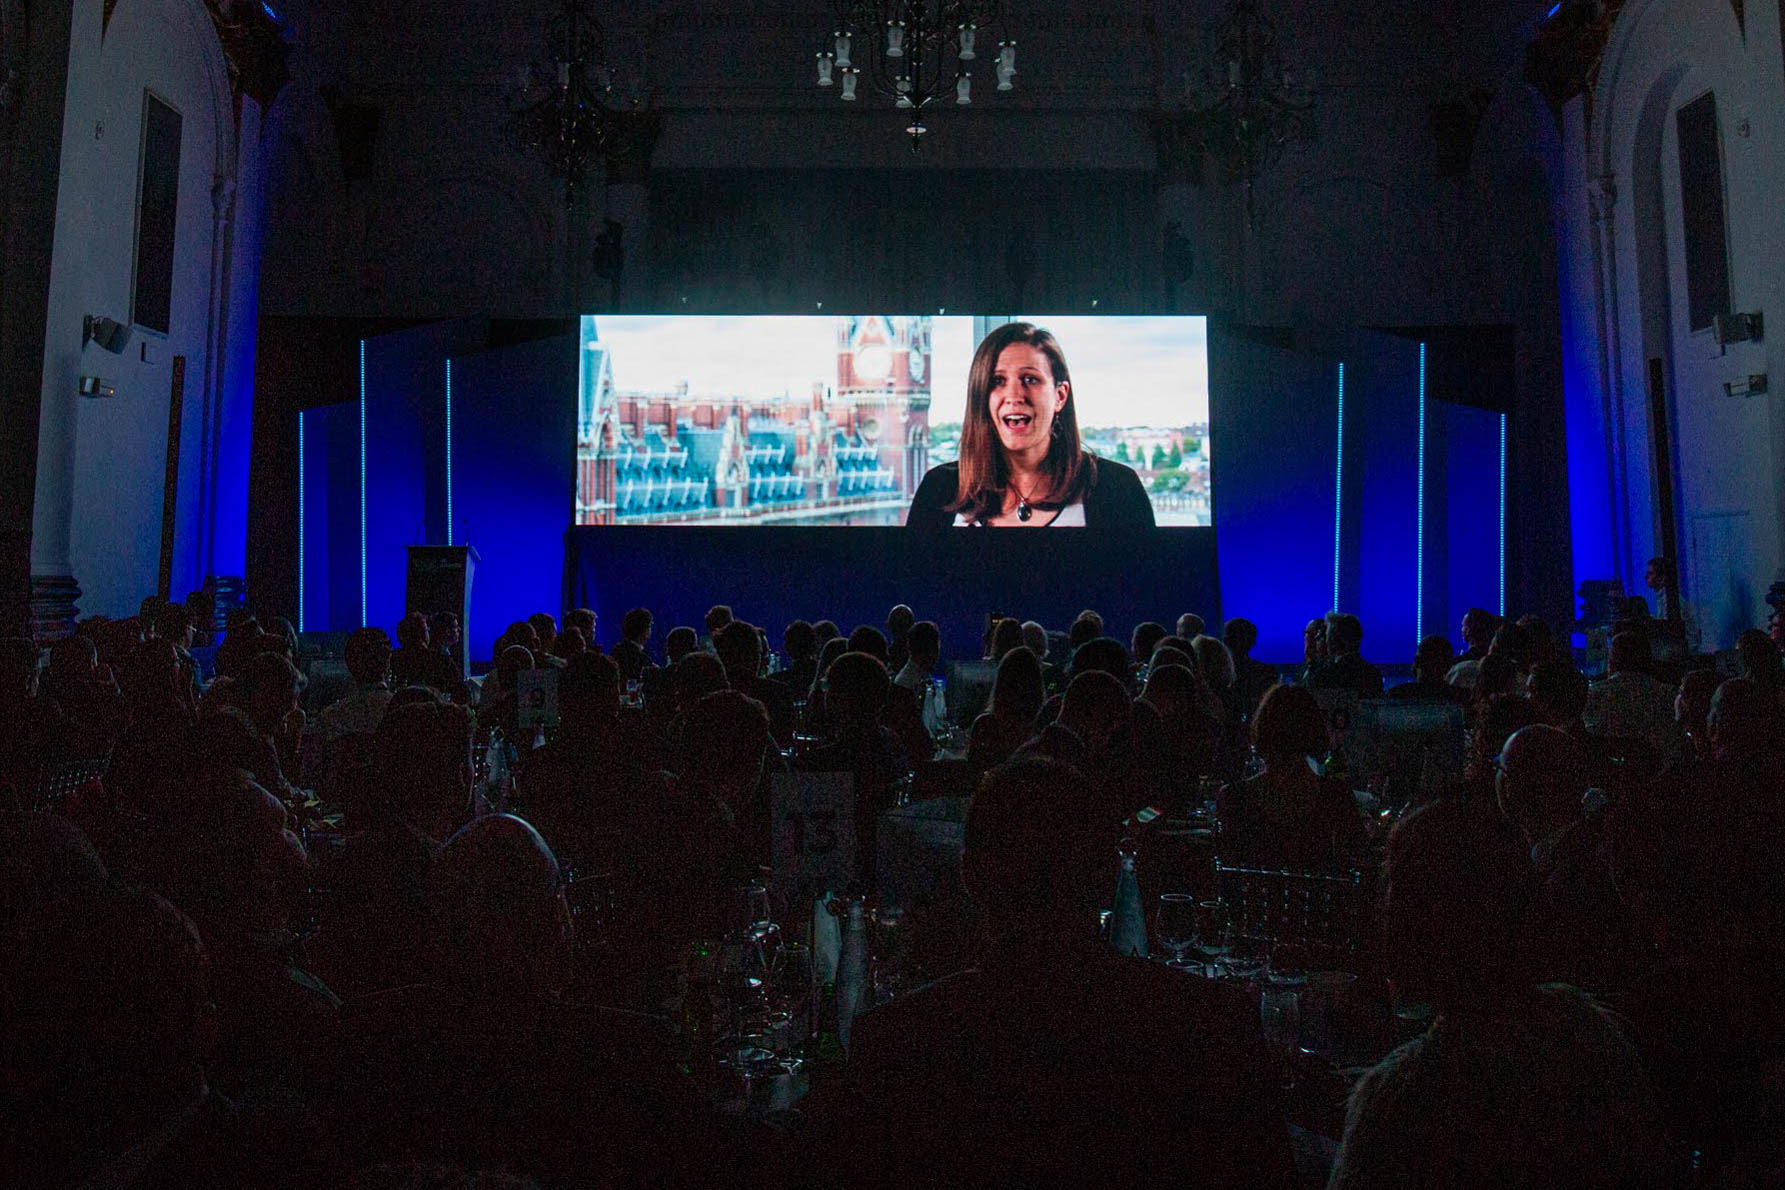 video wall hire, LED VIDEO WALL HIRE